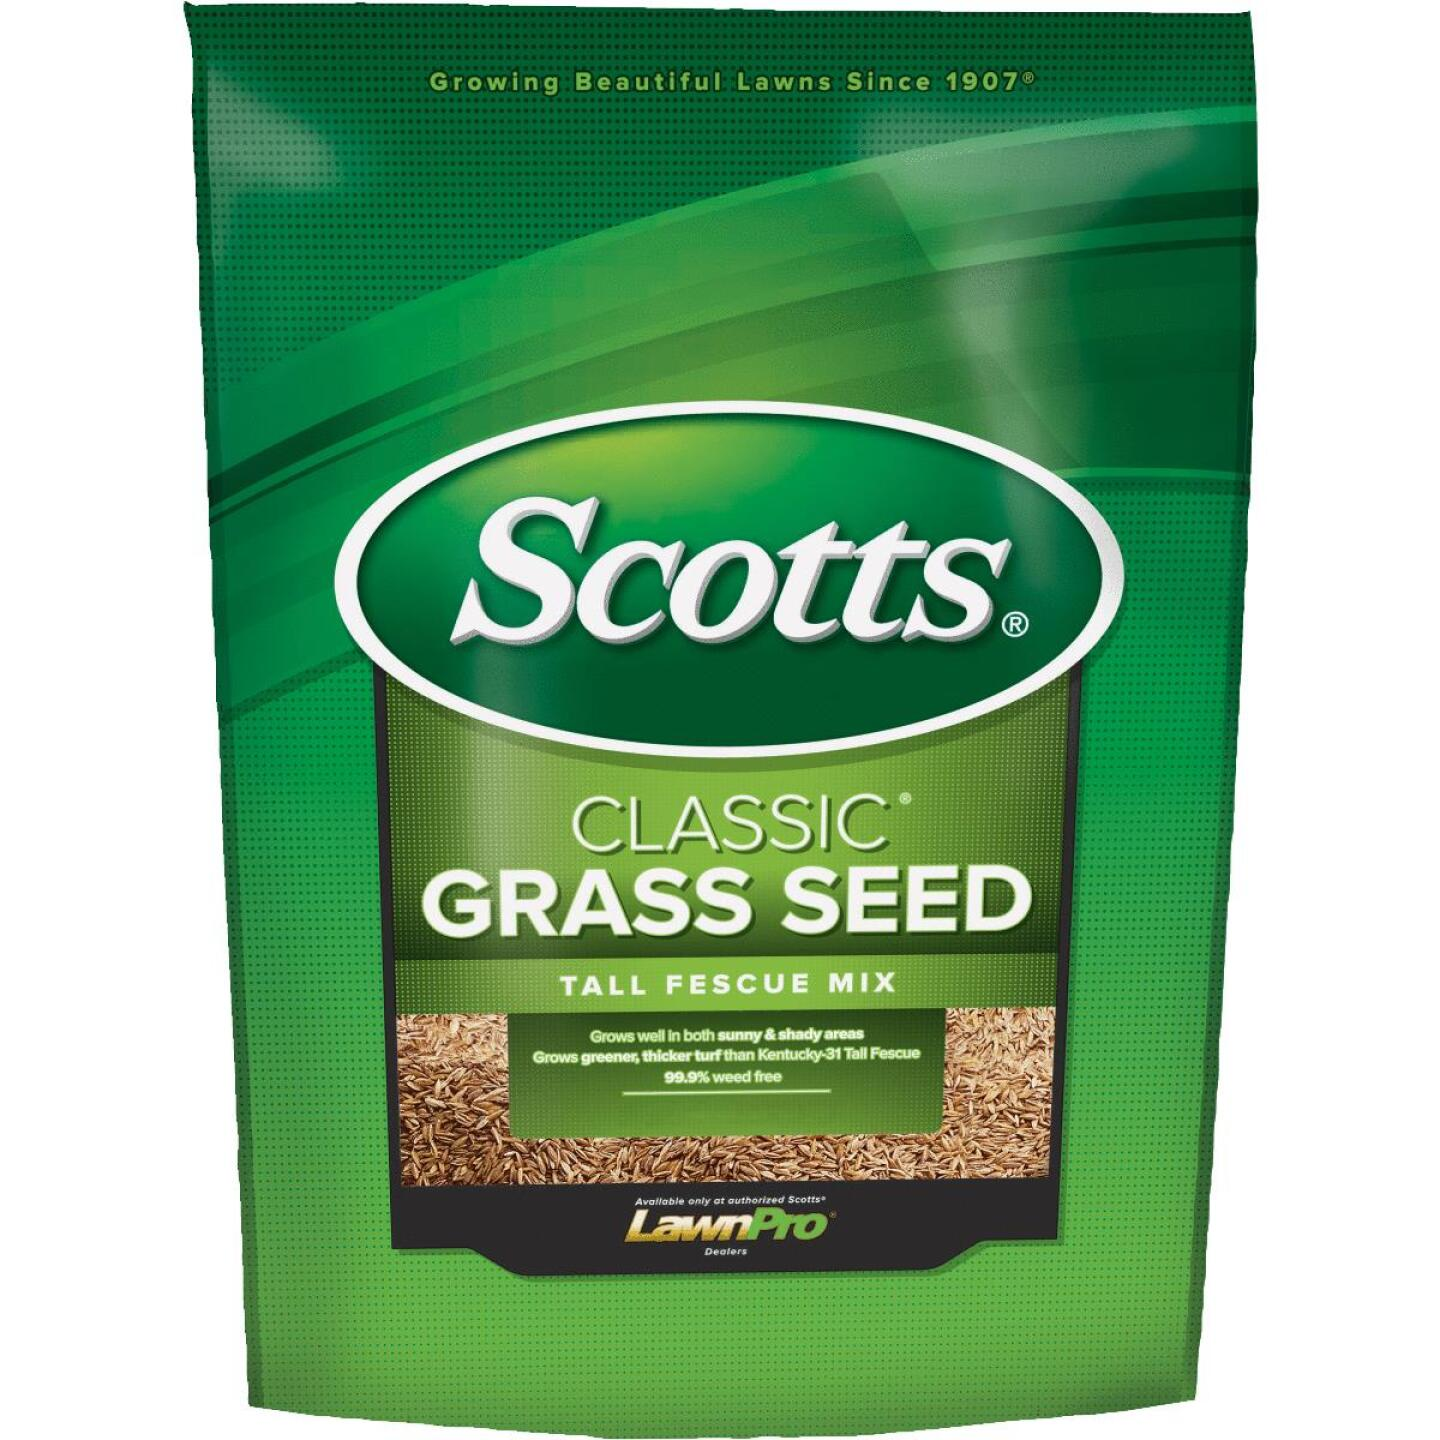 Scotts Classic 3 Lb. 650 Sq. Ft. Coverage Tall Fescue Grass Seed Image 1